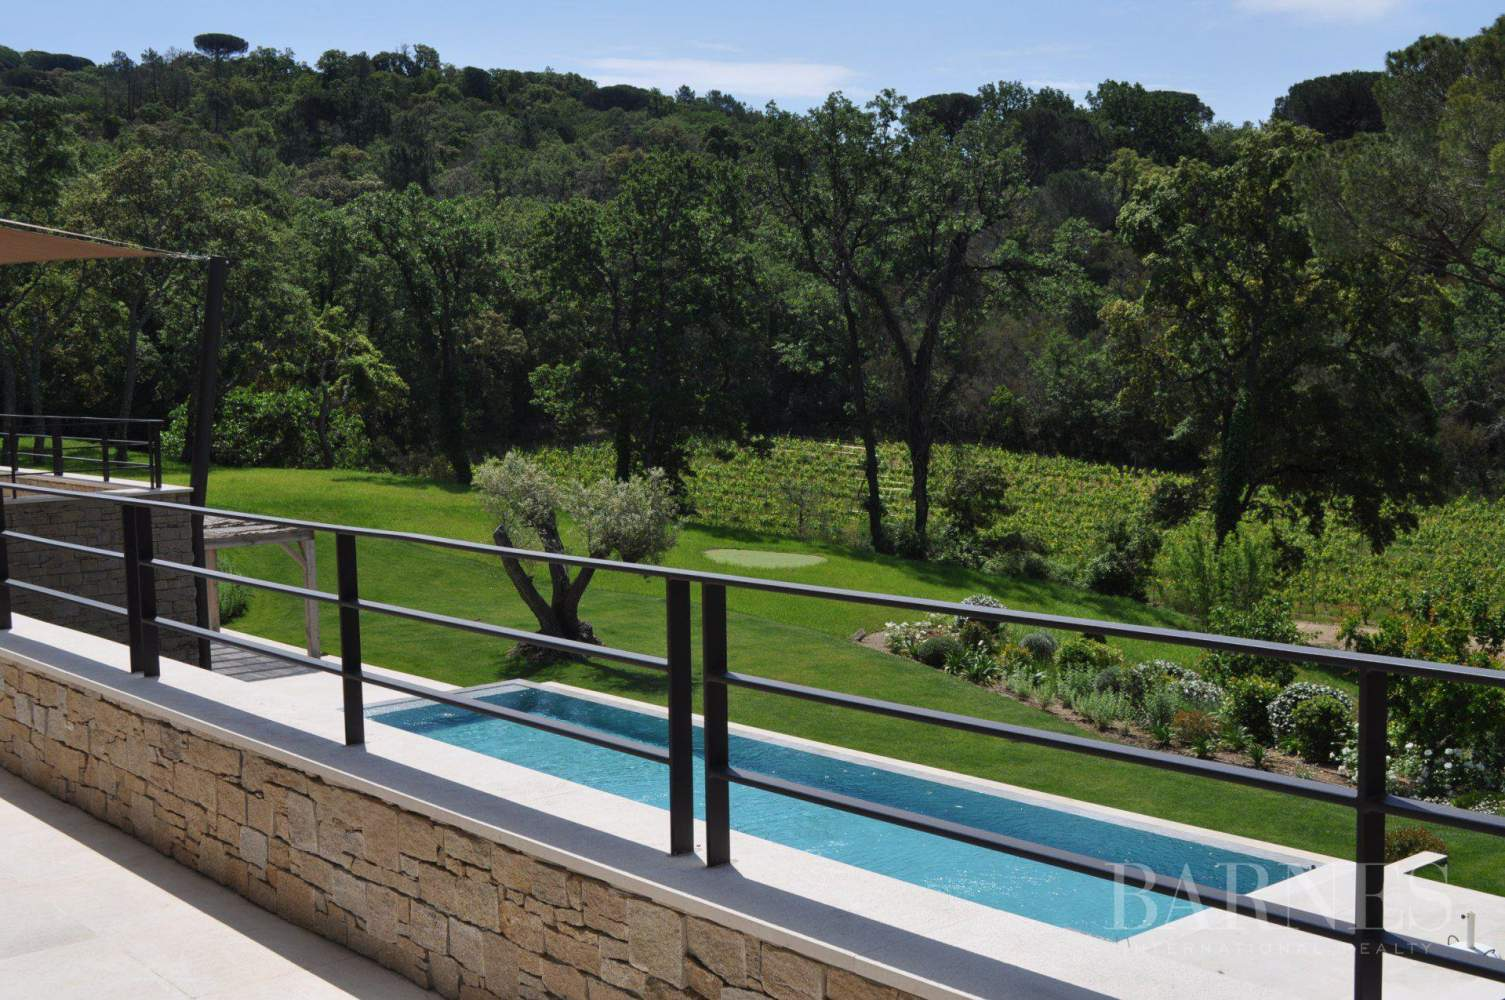 GASSIN - Villa 7 bedrooms - Infinity pool - Golf - Absolute calm and privacy picture 10